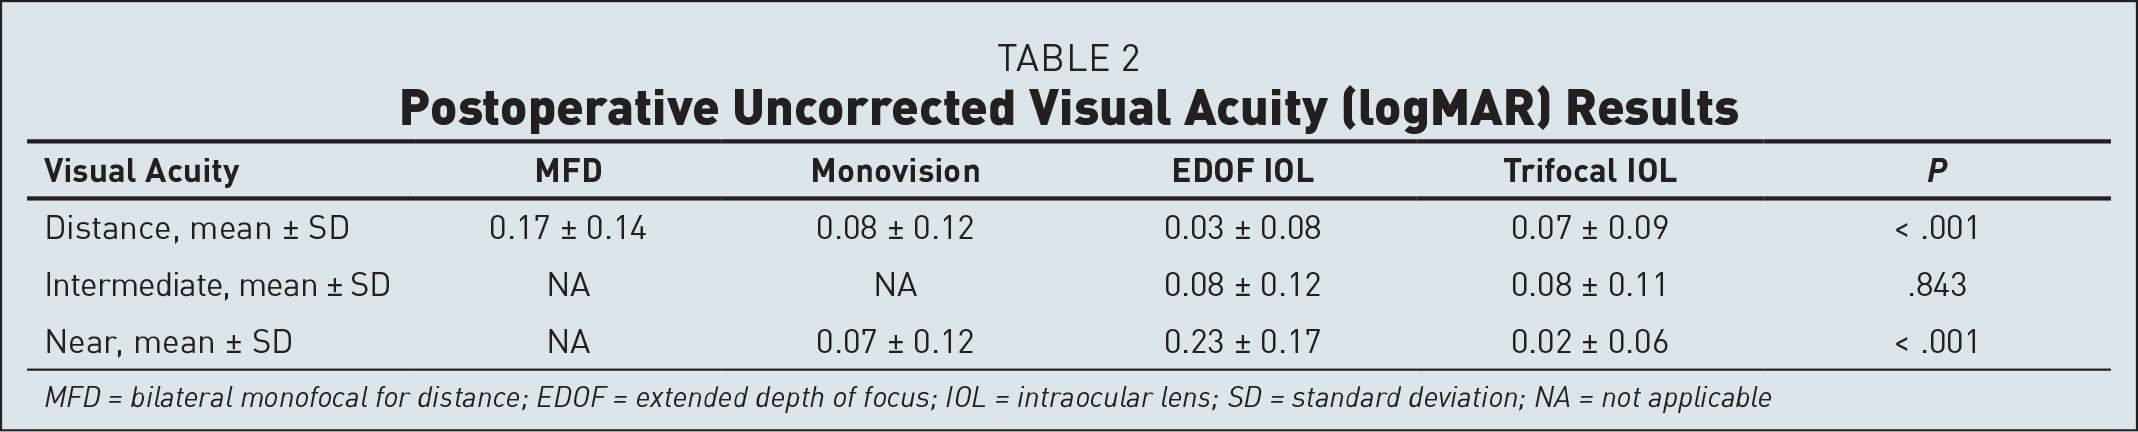 Postoperative Uncorrected Visual Acuity (logMAR) Results